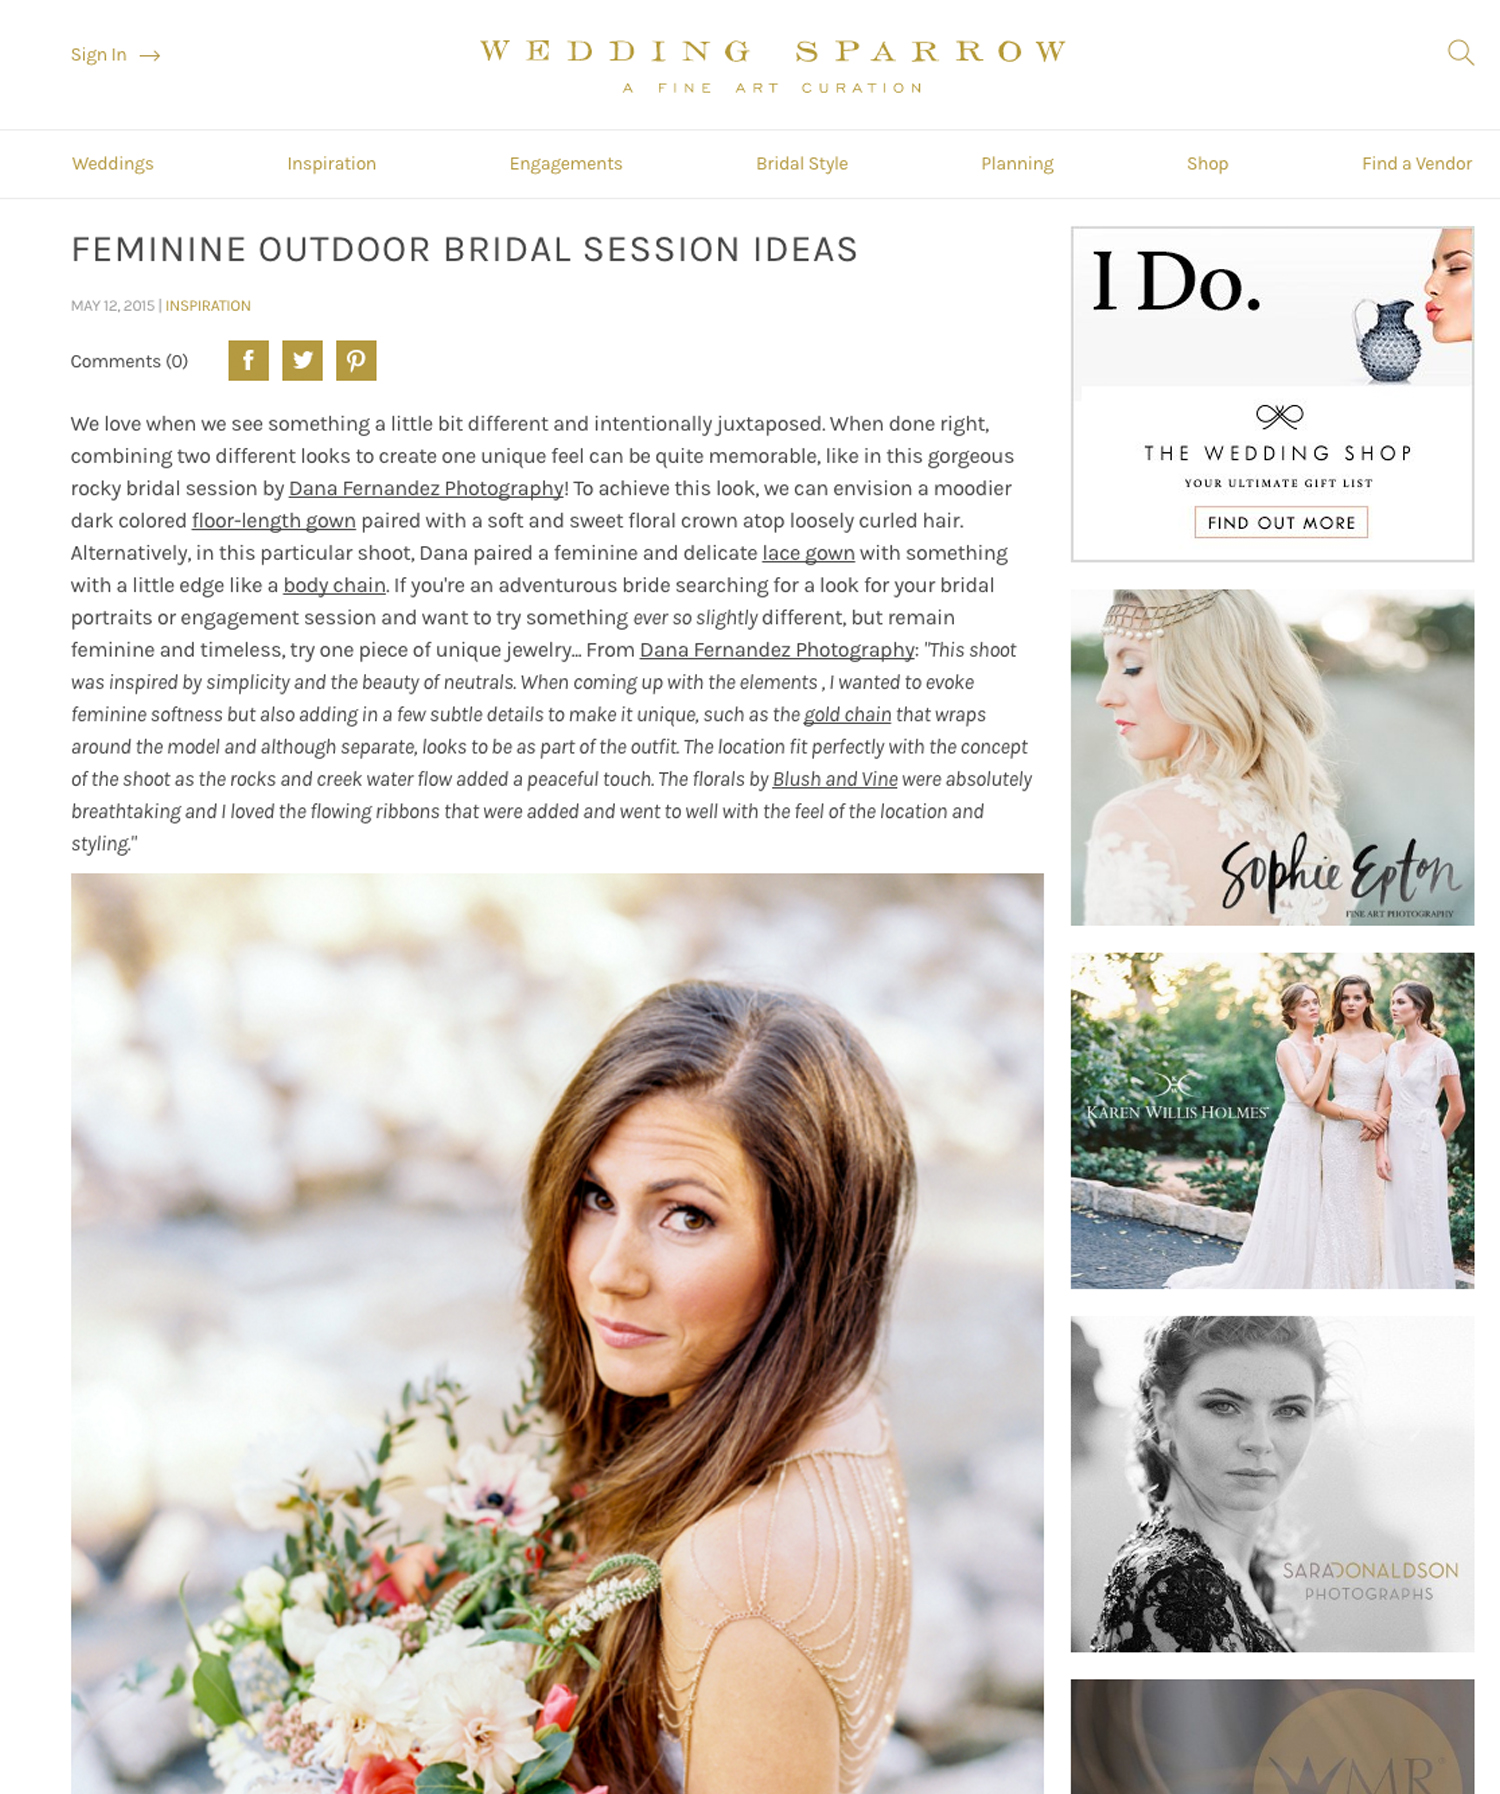 Wedding Sparrow | May '15 (Editorial)